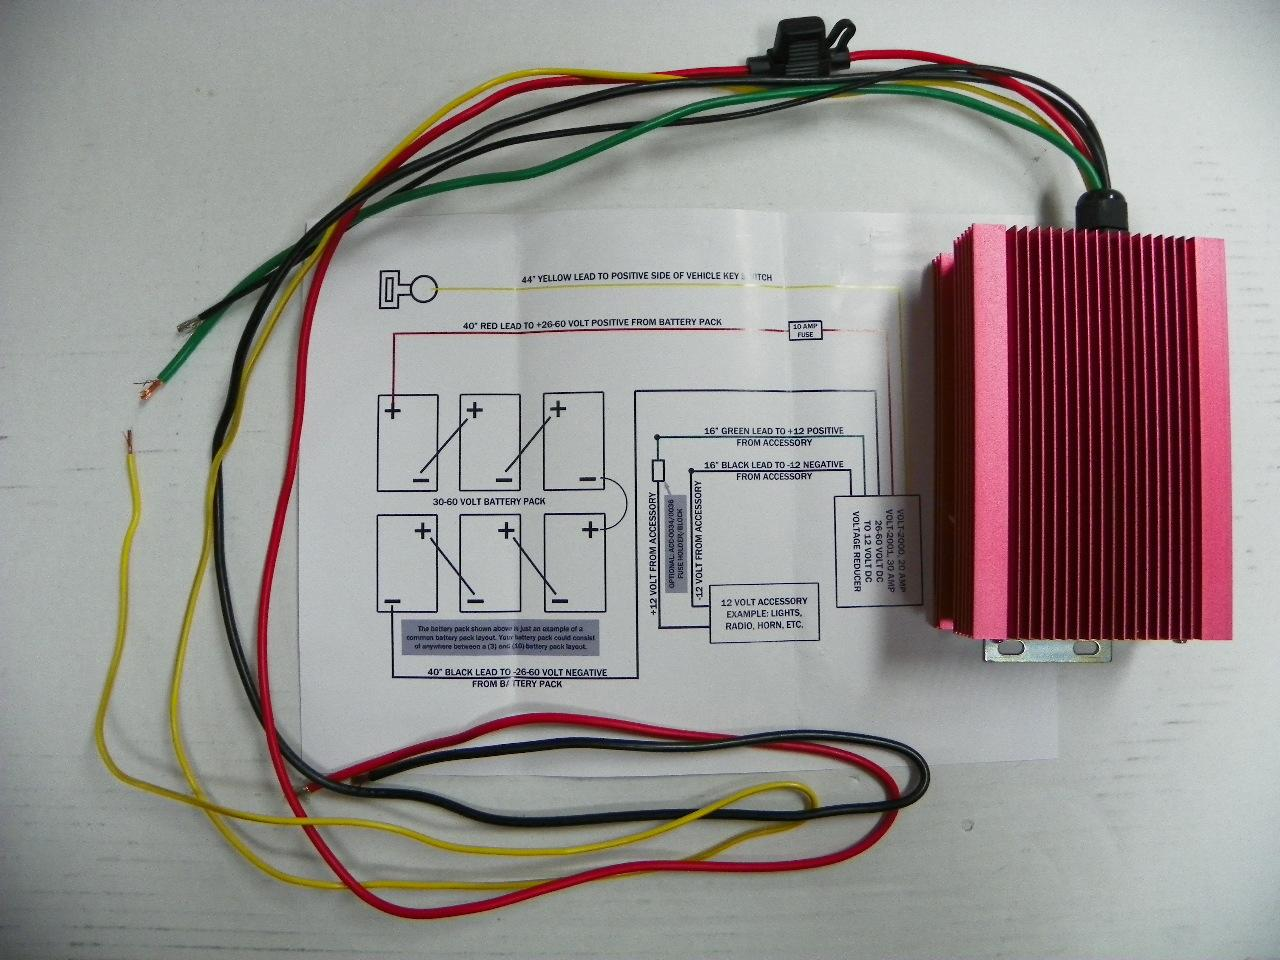 48 volt golf cart battery wiring diagram eukaryotic animal cell reducer get free image about